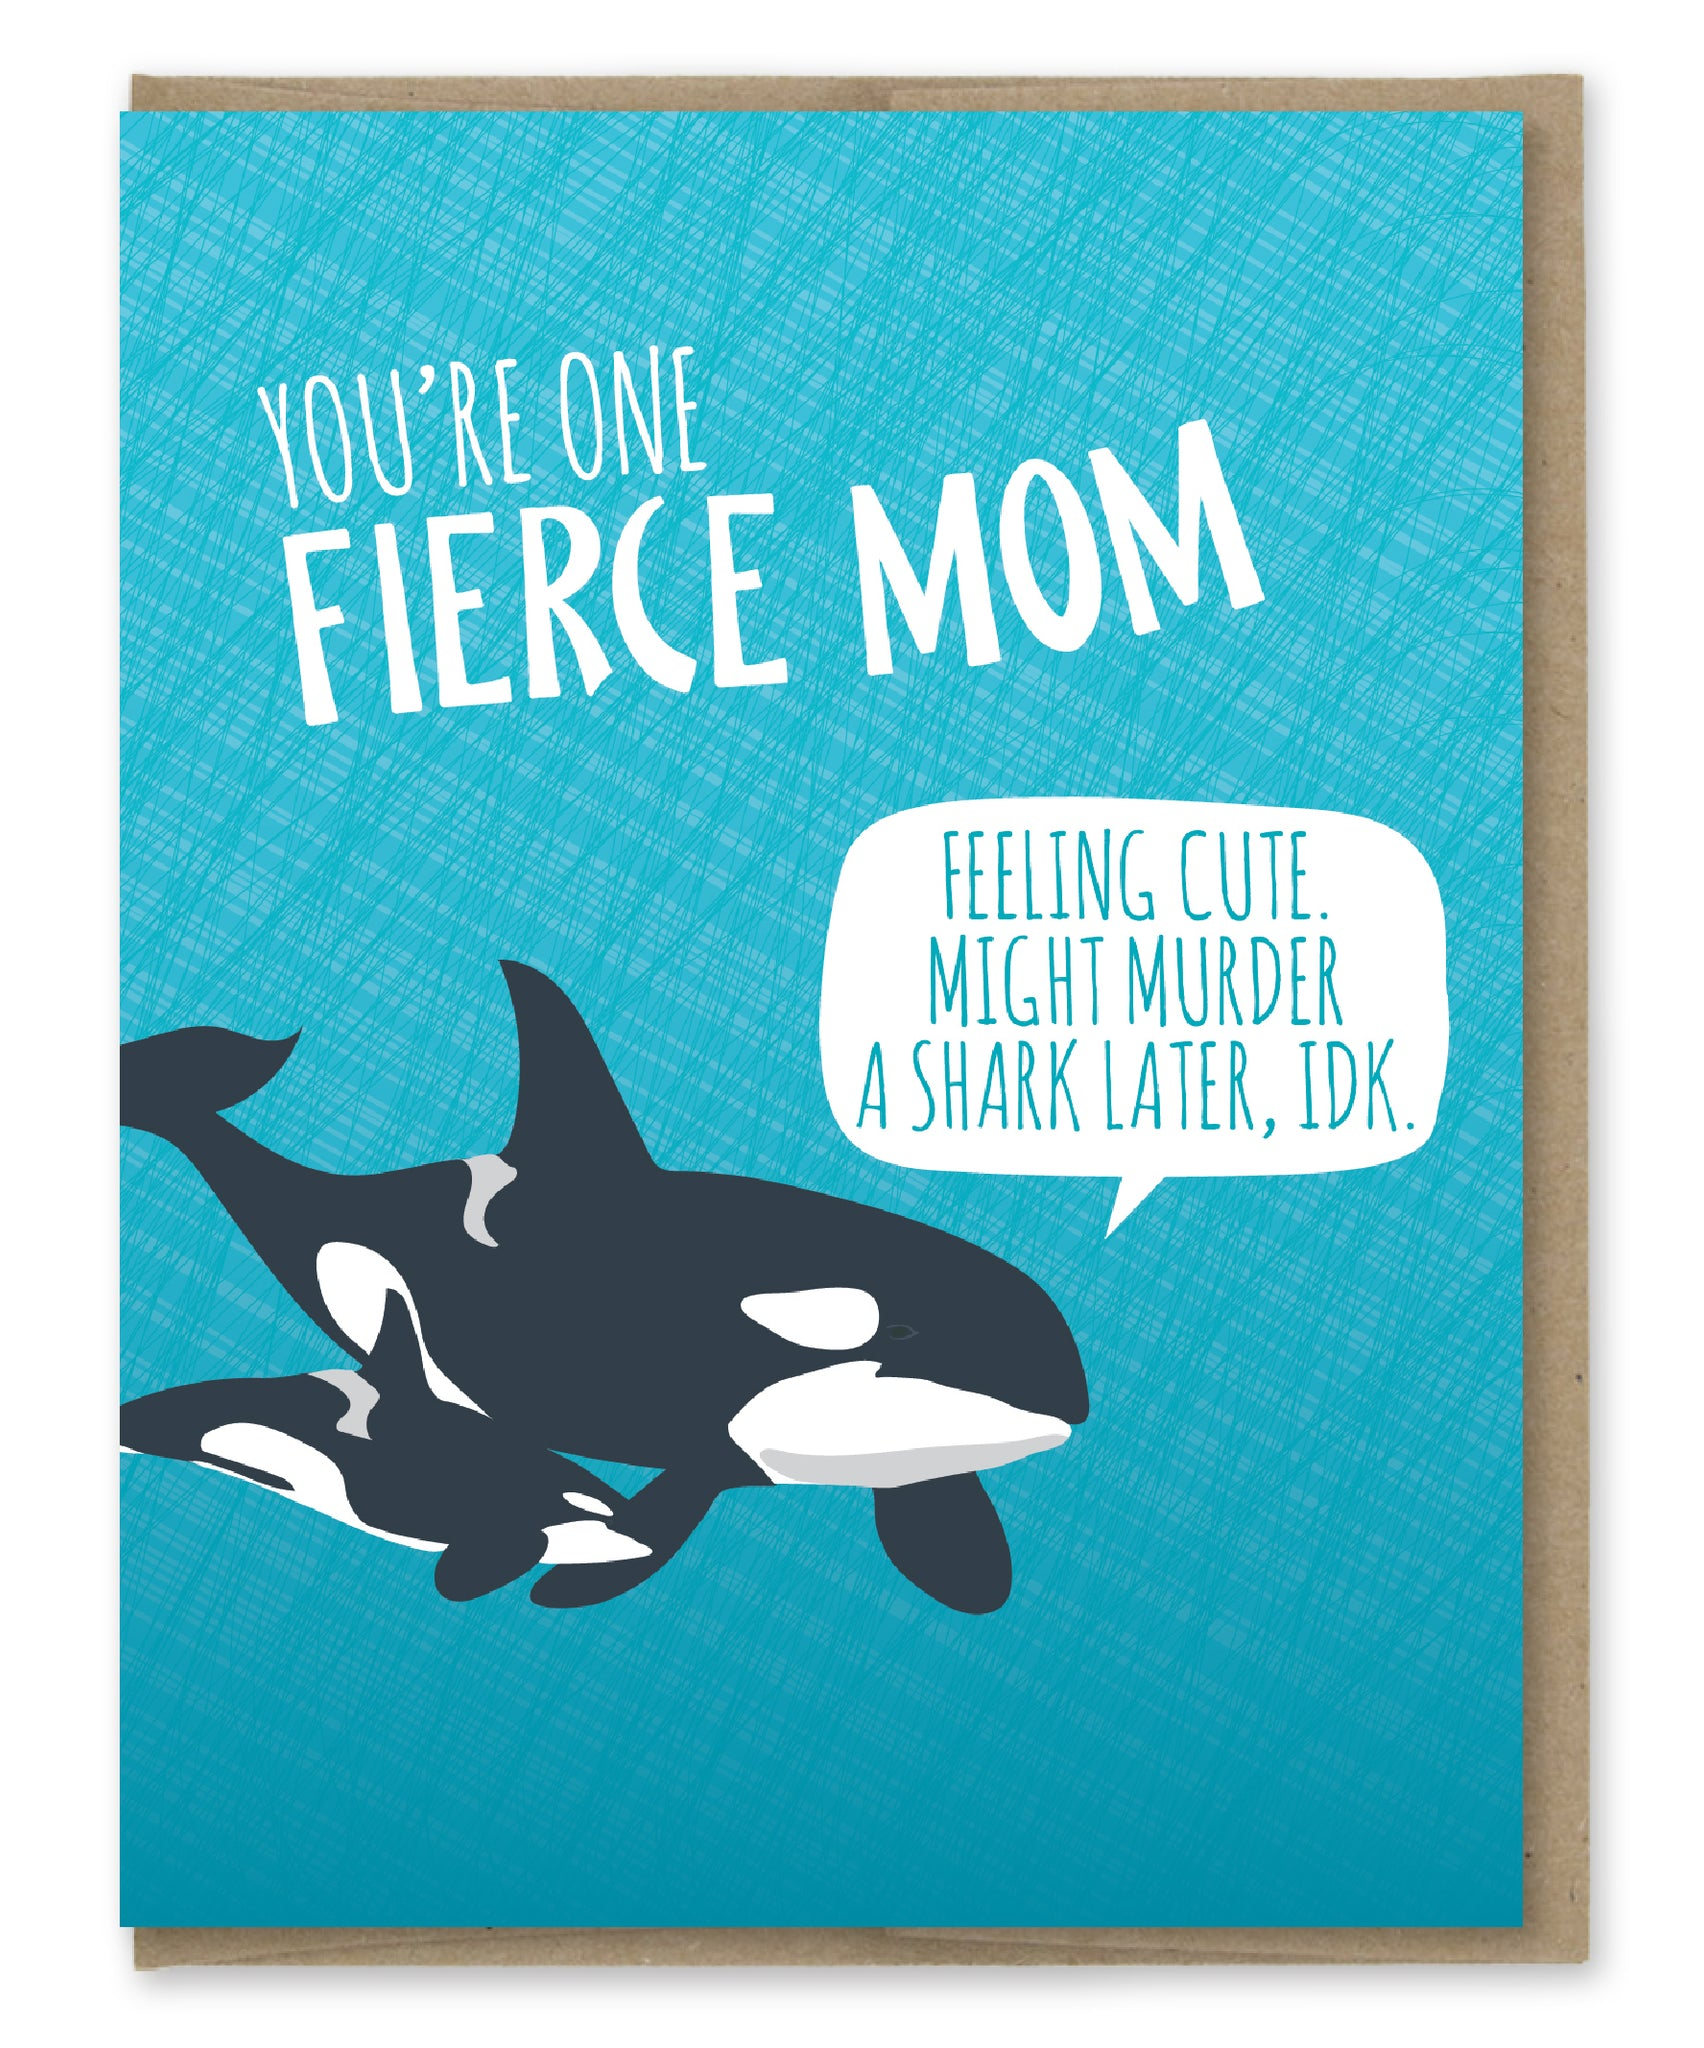 FIERCE MOM CARD